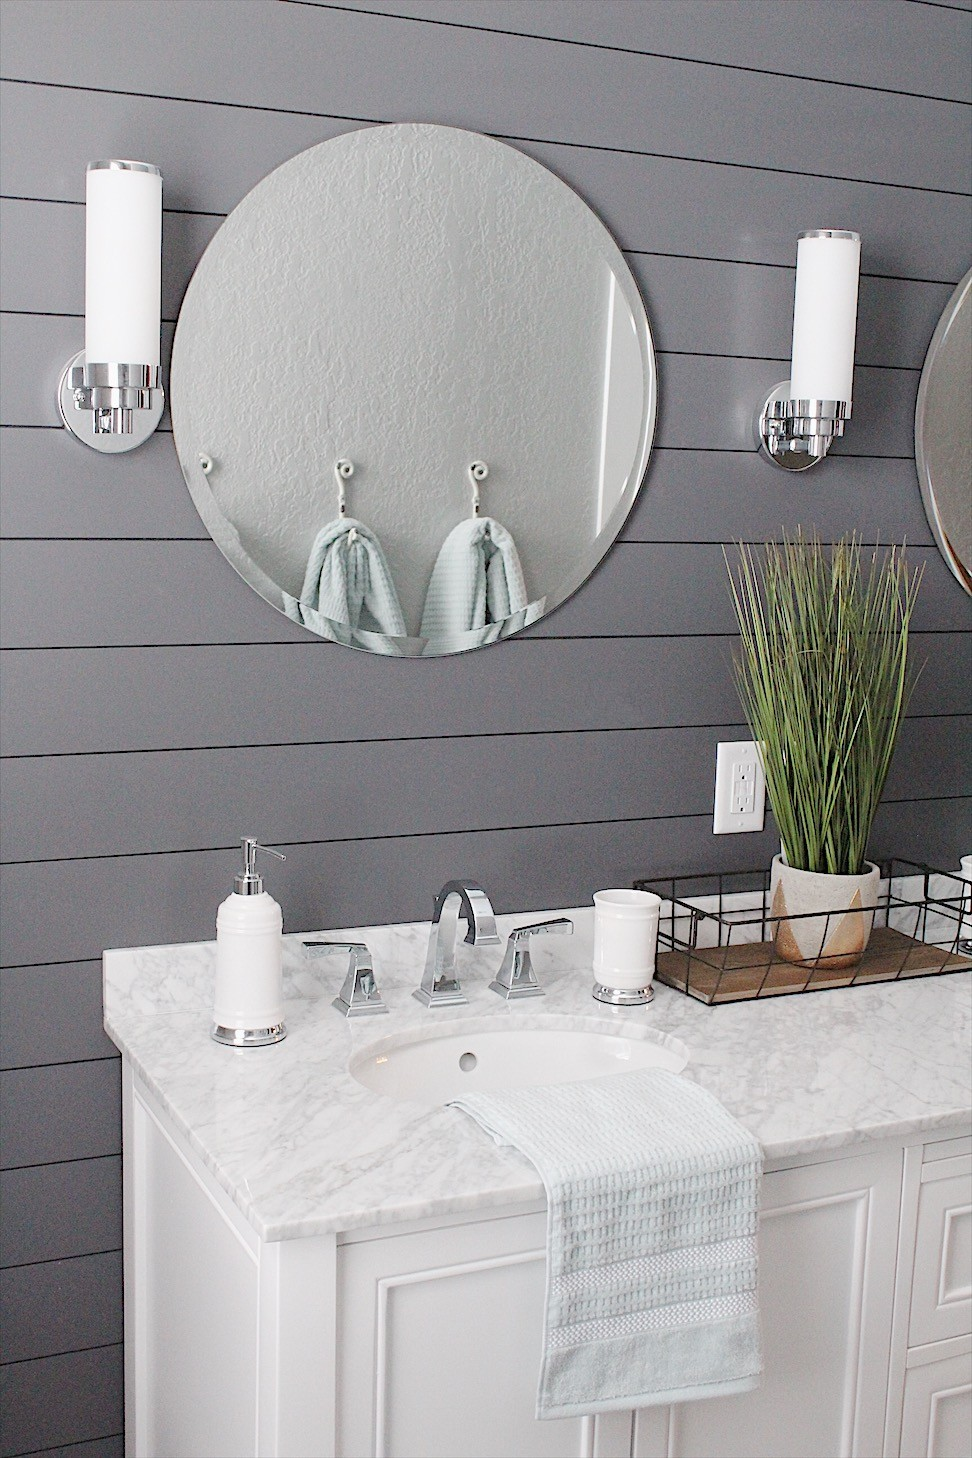 "24"" round chrome mirrors - a touch of chic in this farmhouse bathroom remodel"